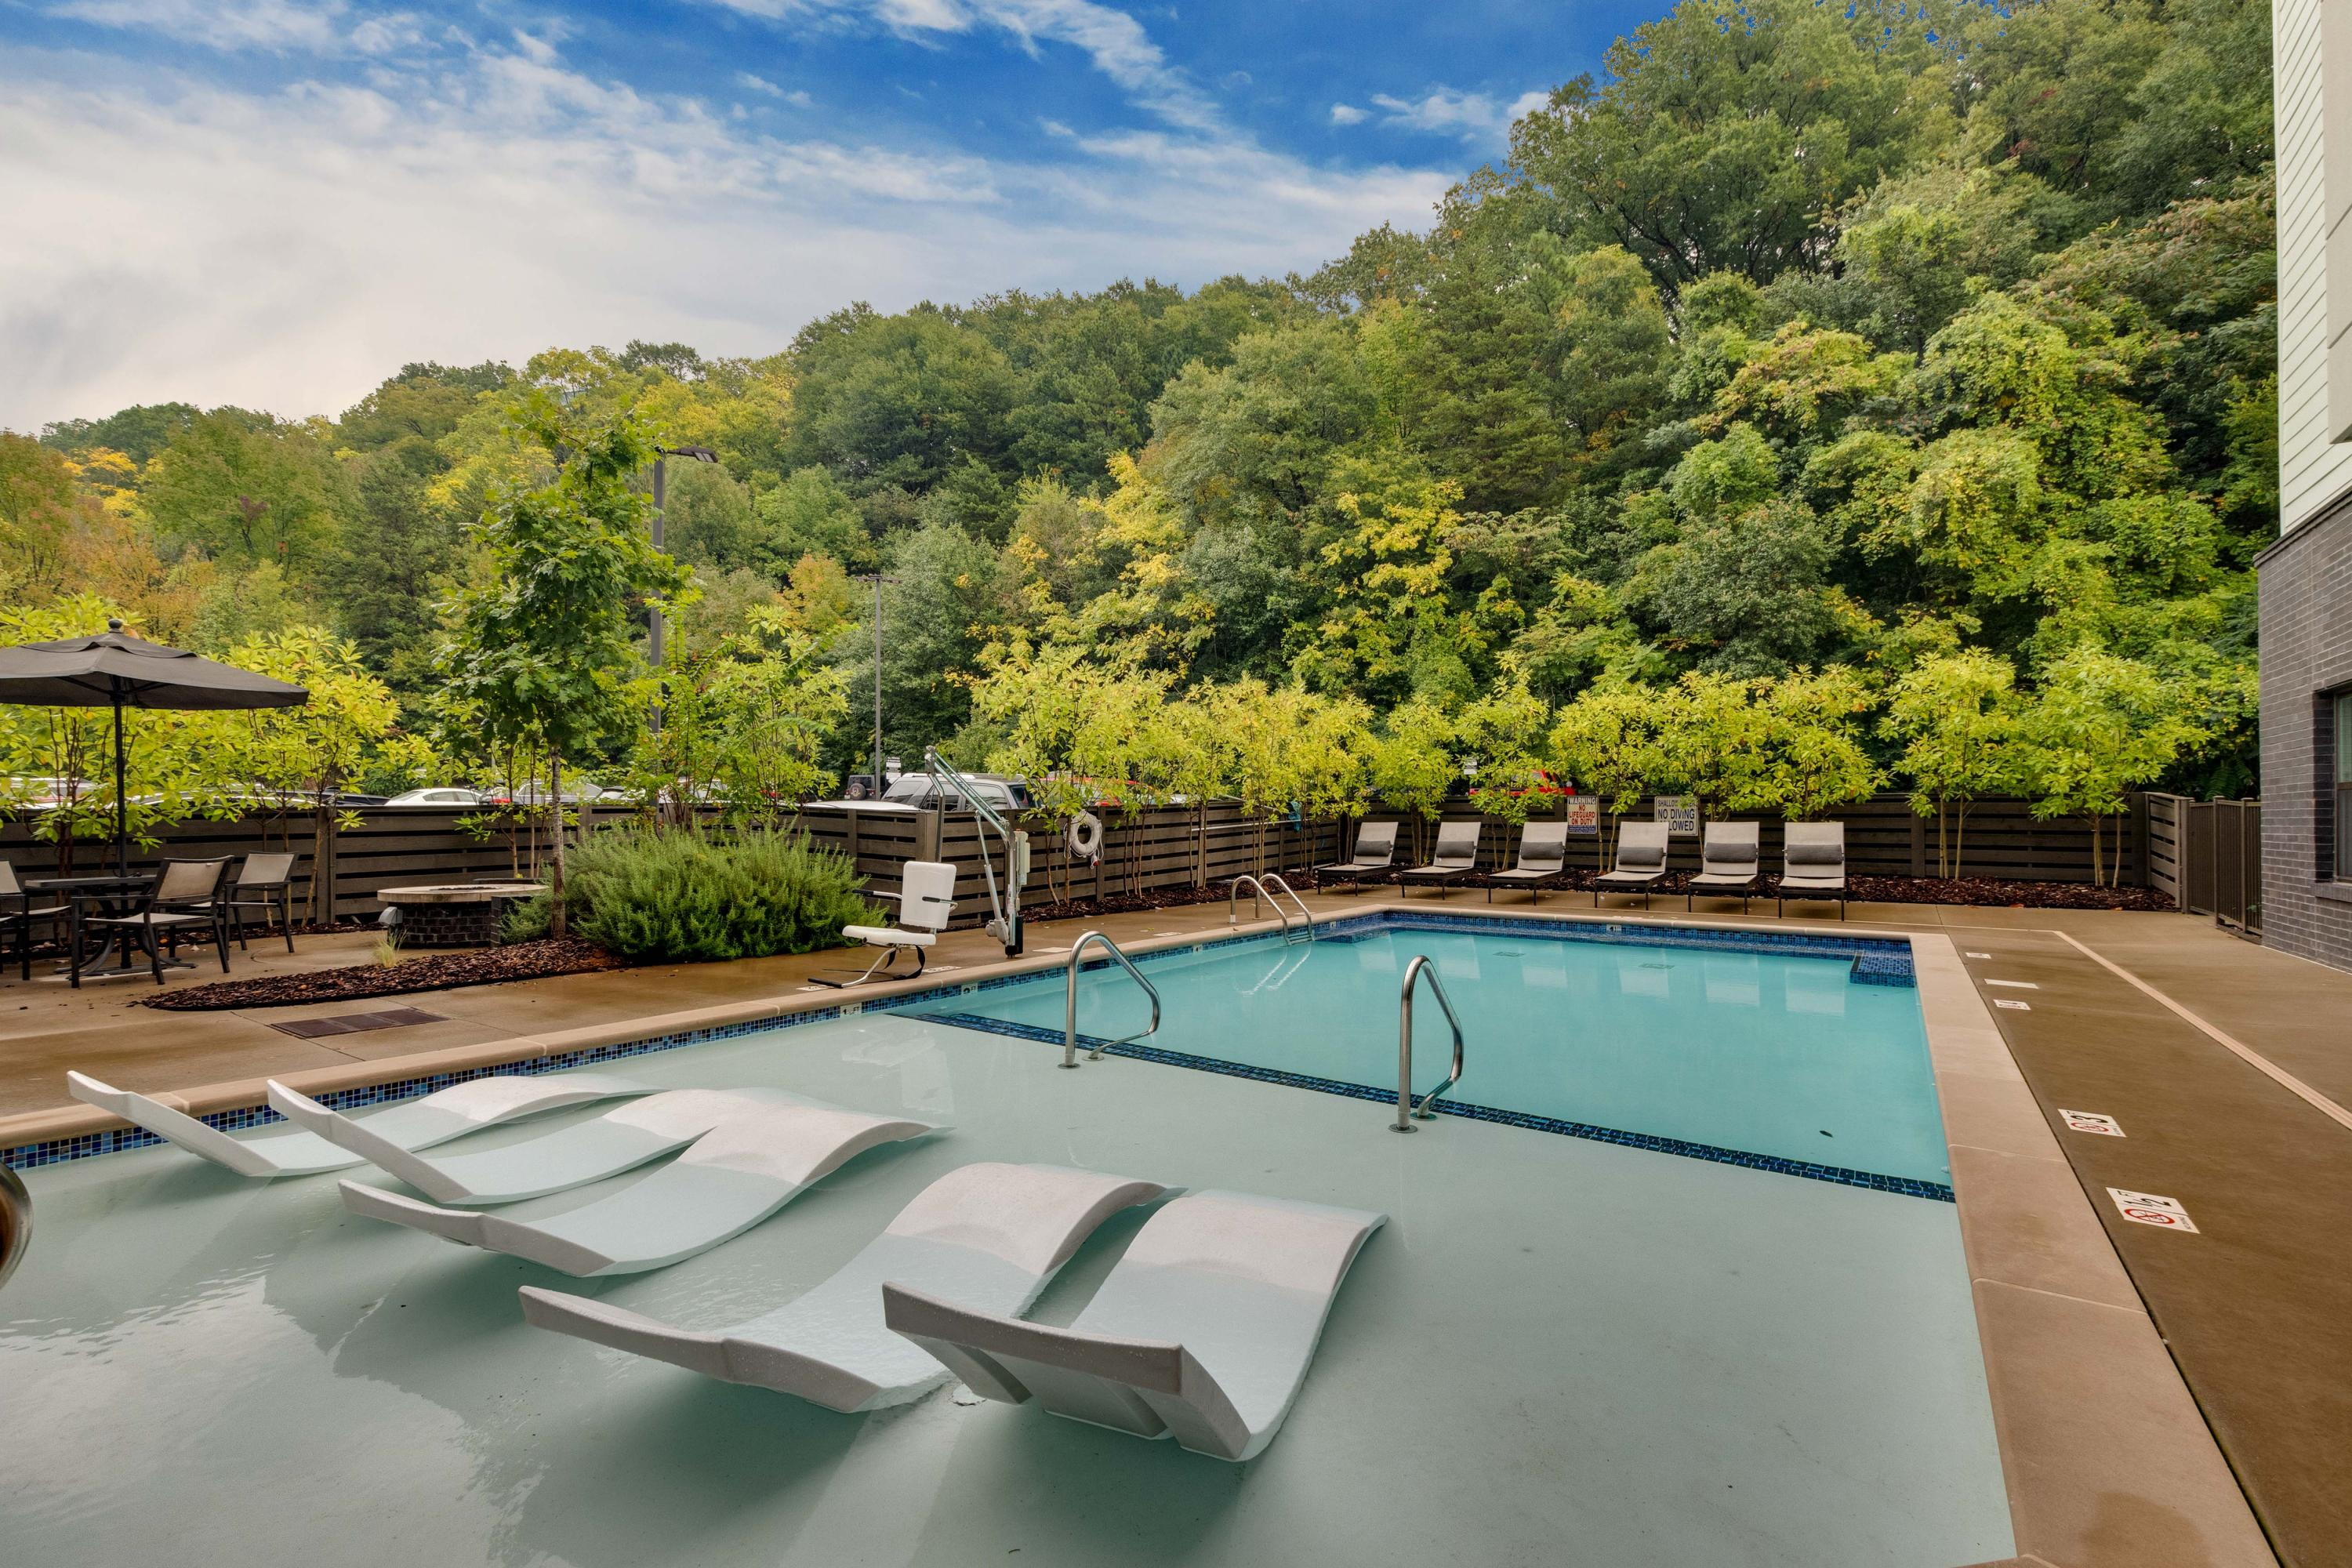 782 Riverfront Pkwy, Chattanooga, TN 37402